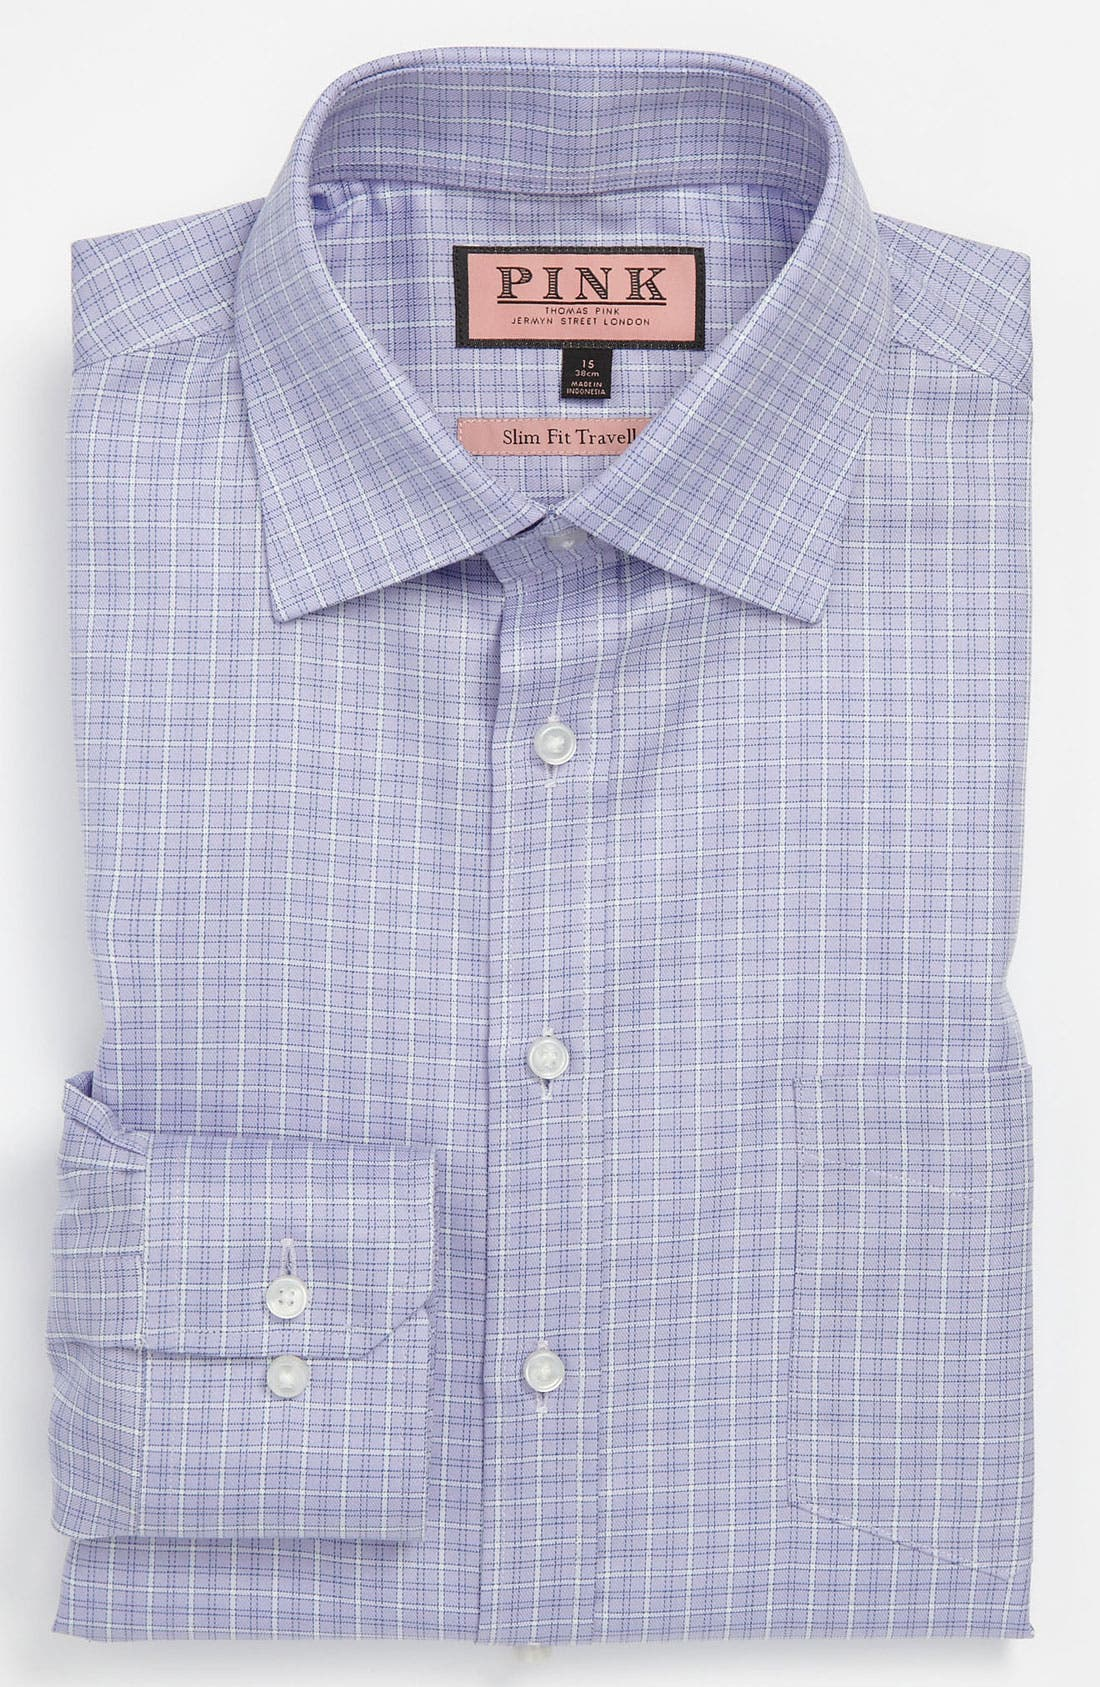 Alternate Image 1 Selected - Thomas Pink Slim Fit Traveller Dress Shirt